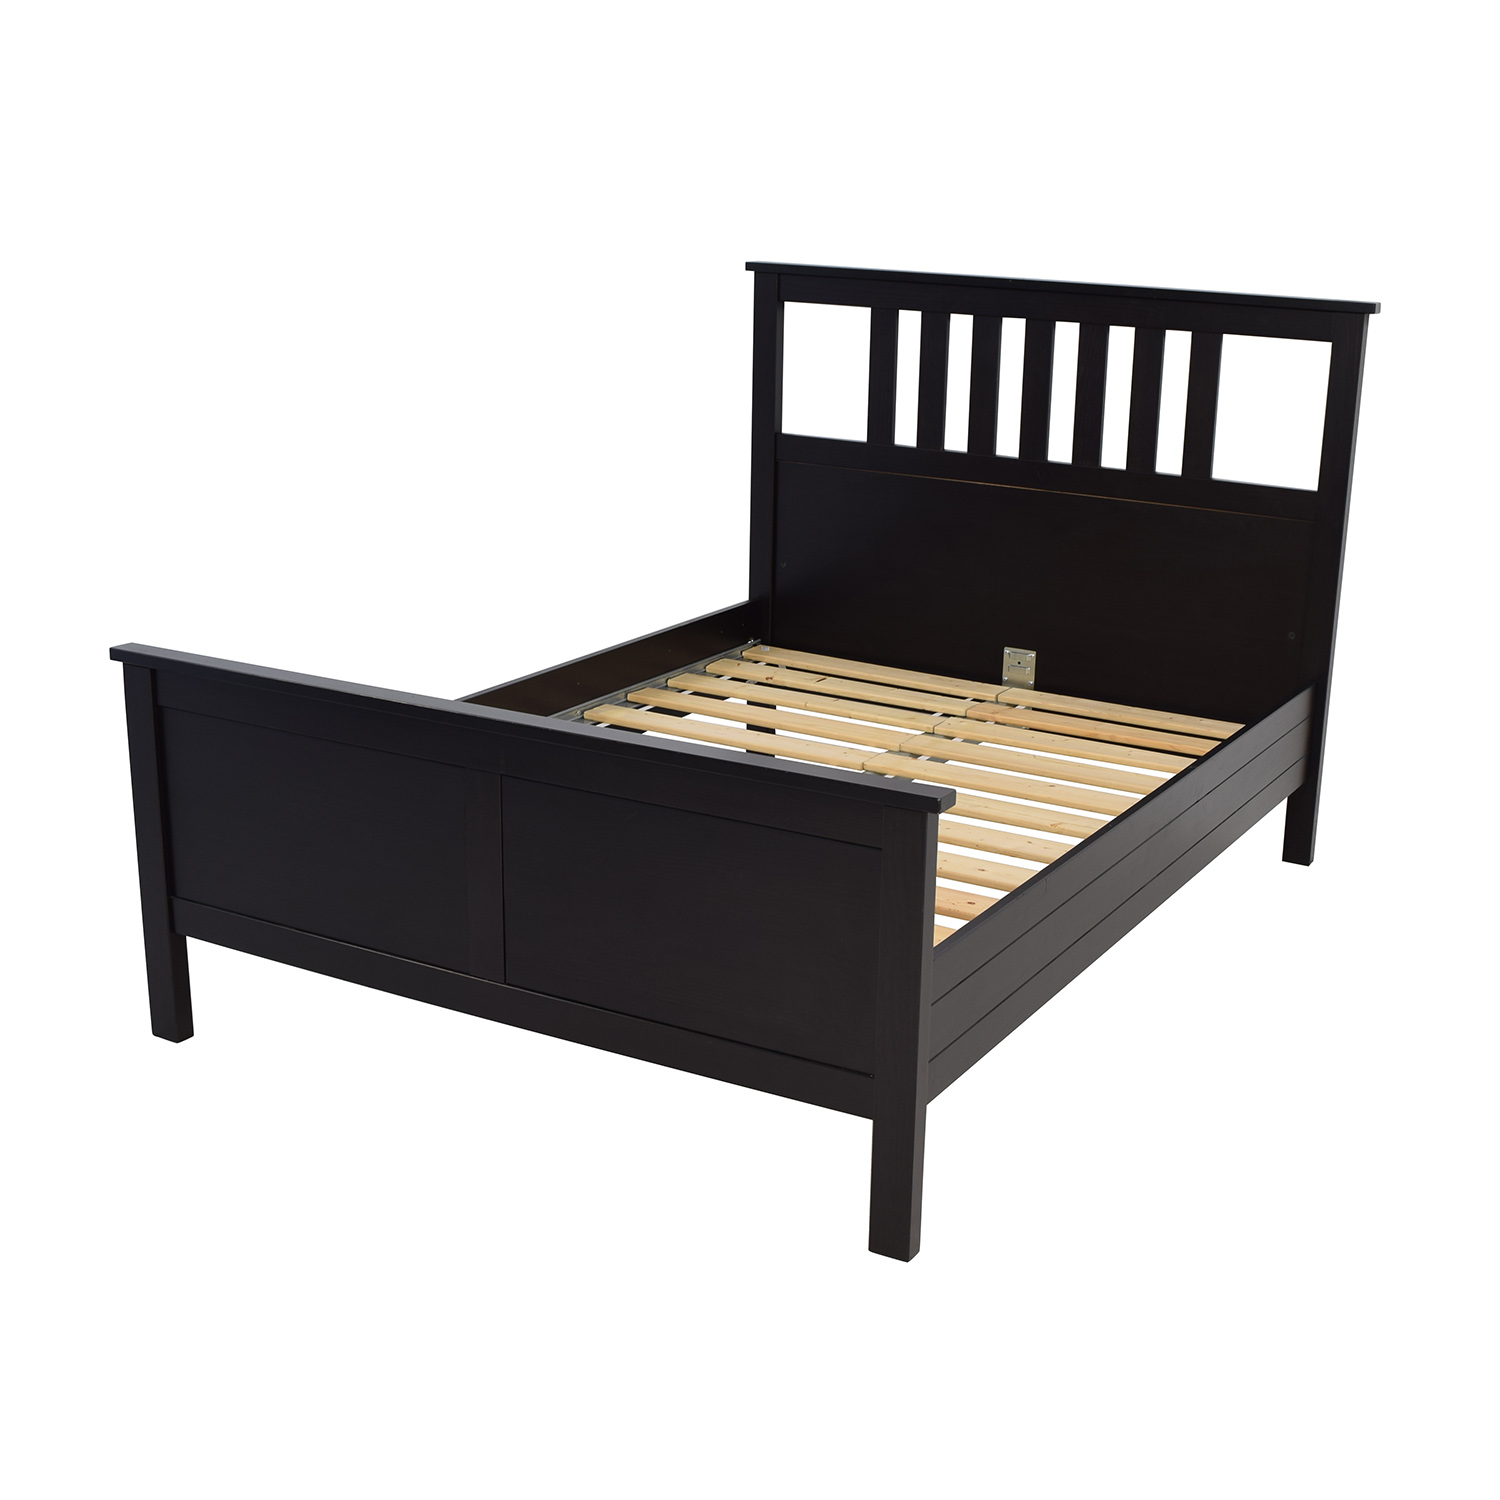 53 off ikea ikea dark brown wood queen bed frame beds